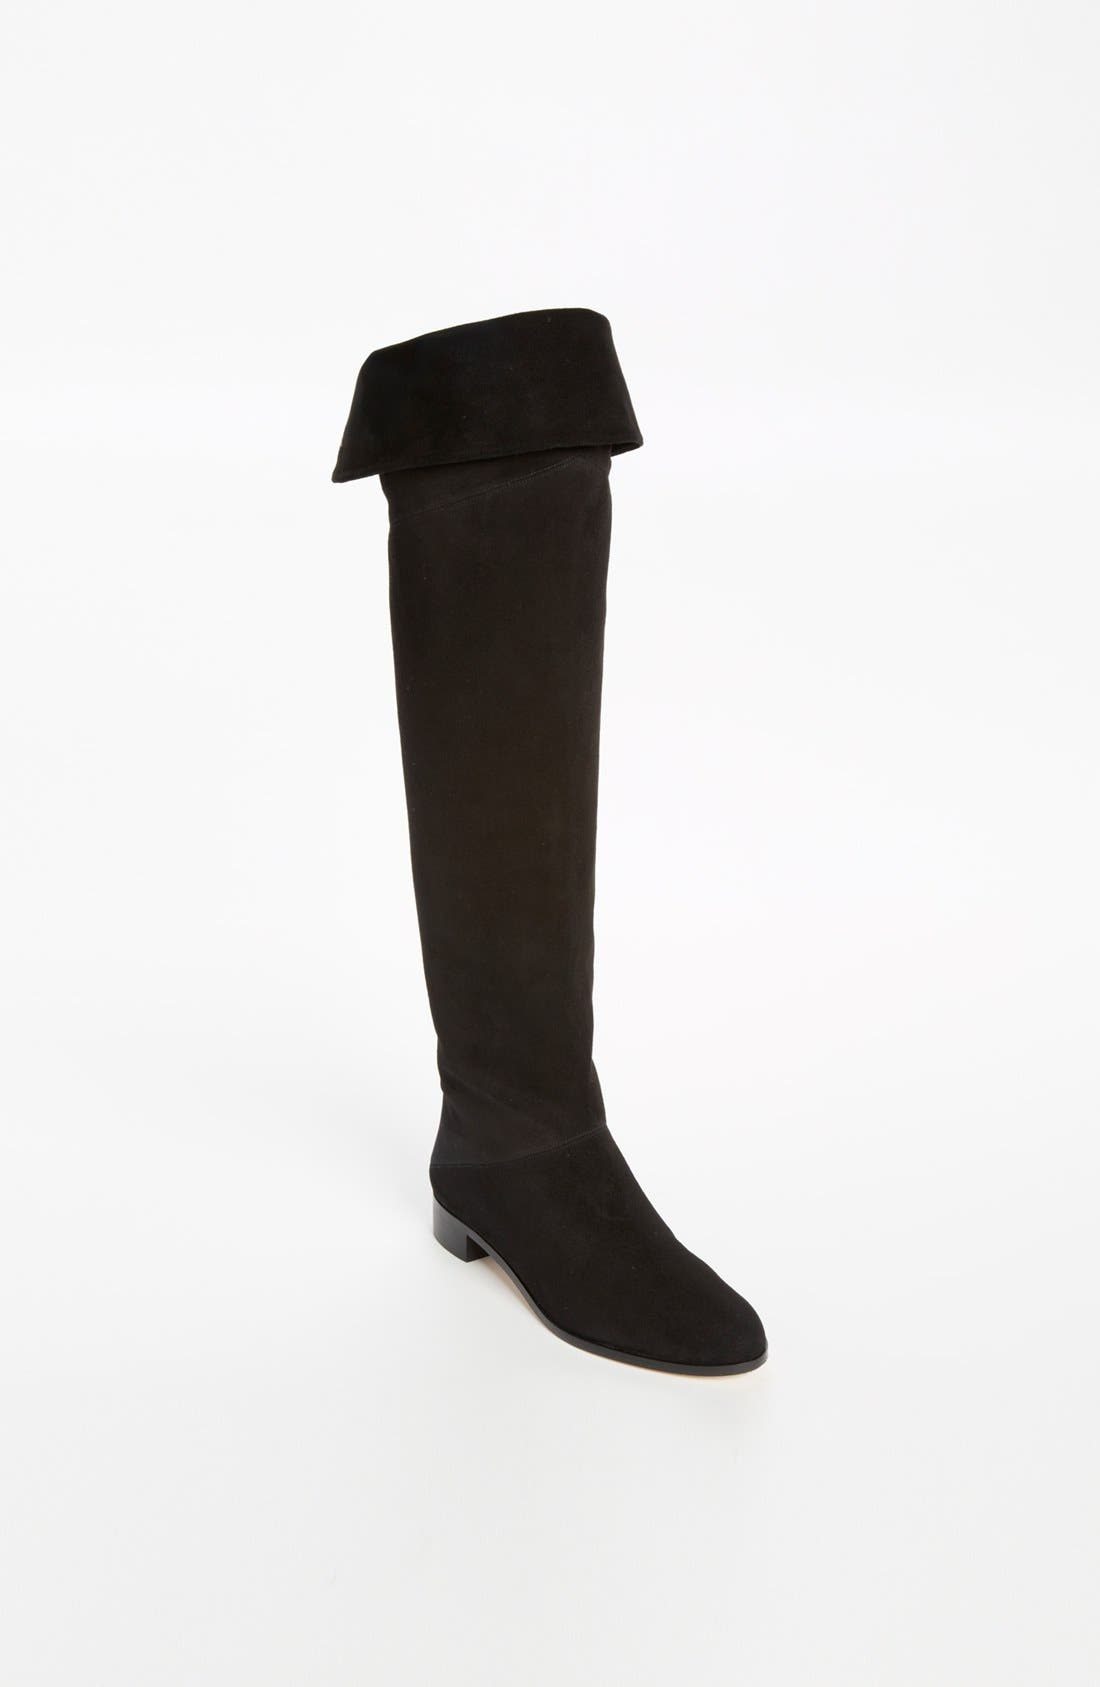 Alternate Image 1 Selected - Charlotte Olympia 'Charming' Over-the-Knee Boot